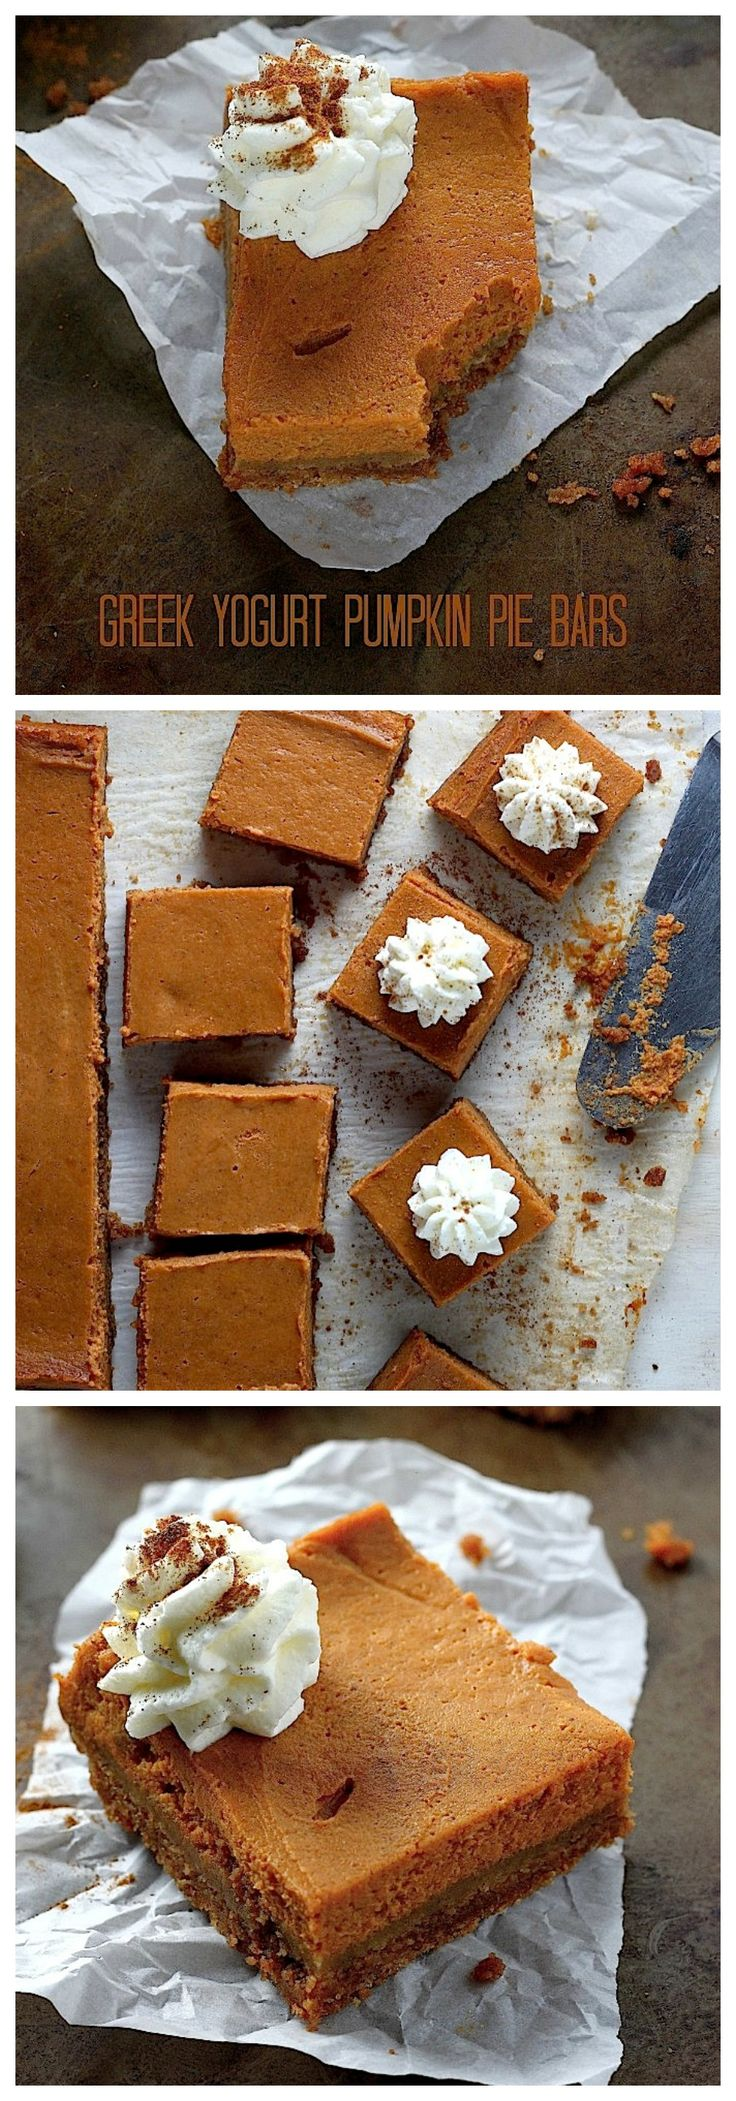 Greek Yogurt Pumpkin Pie Bars - So much easier than making a whole pie! These creamy bars taste just like the real thing and travel great. Perfect for the holidays!